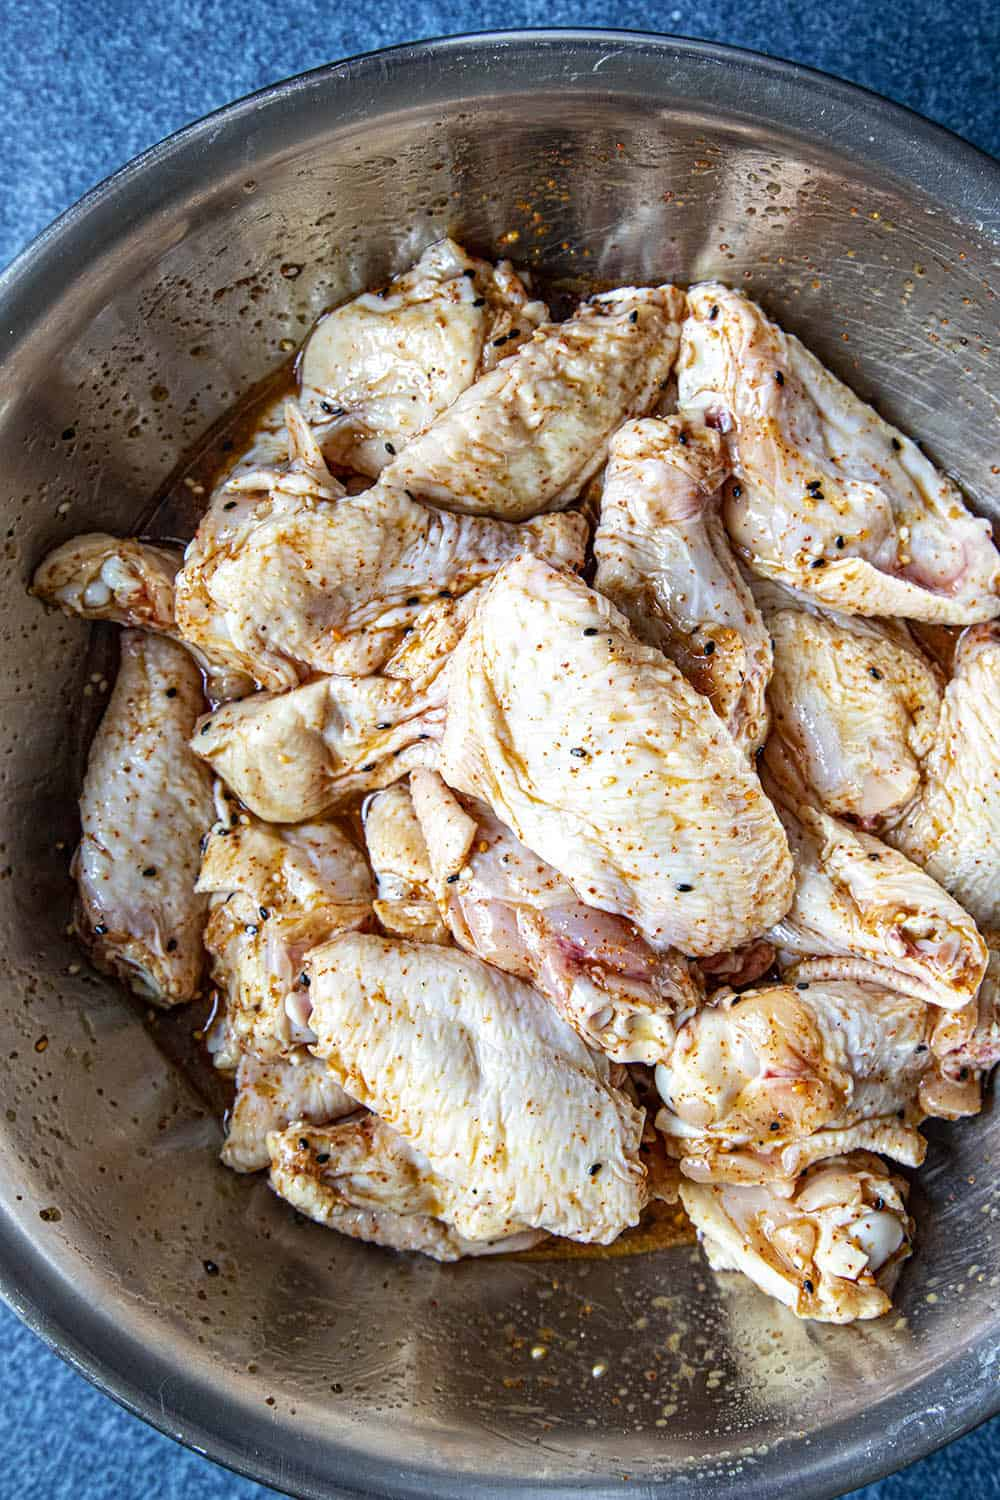 Marinating the chicken wings in a bowl with my grilled chicken marinade